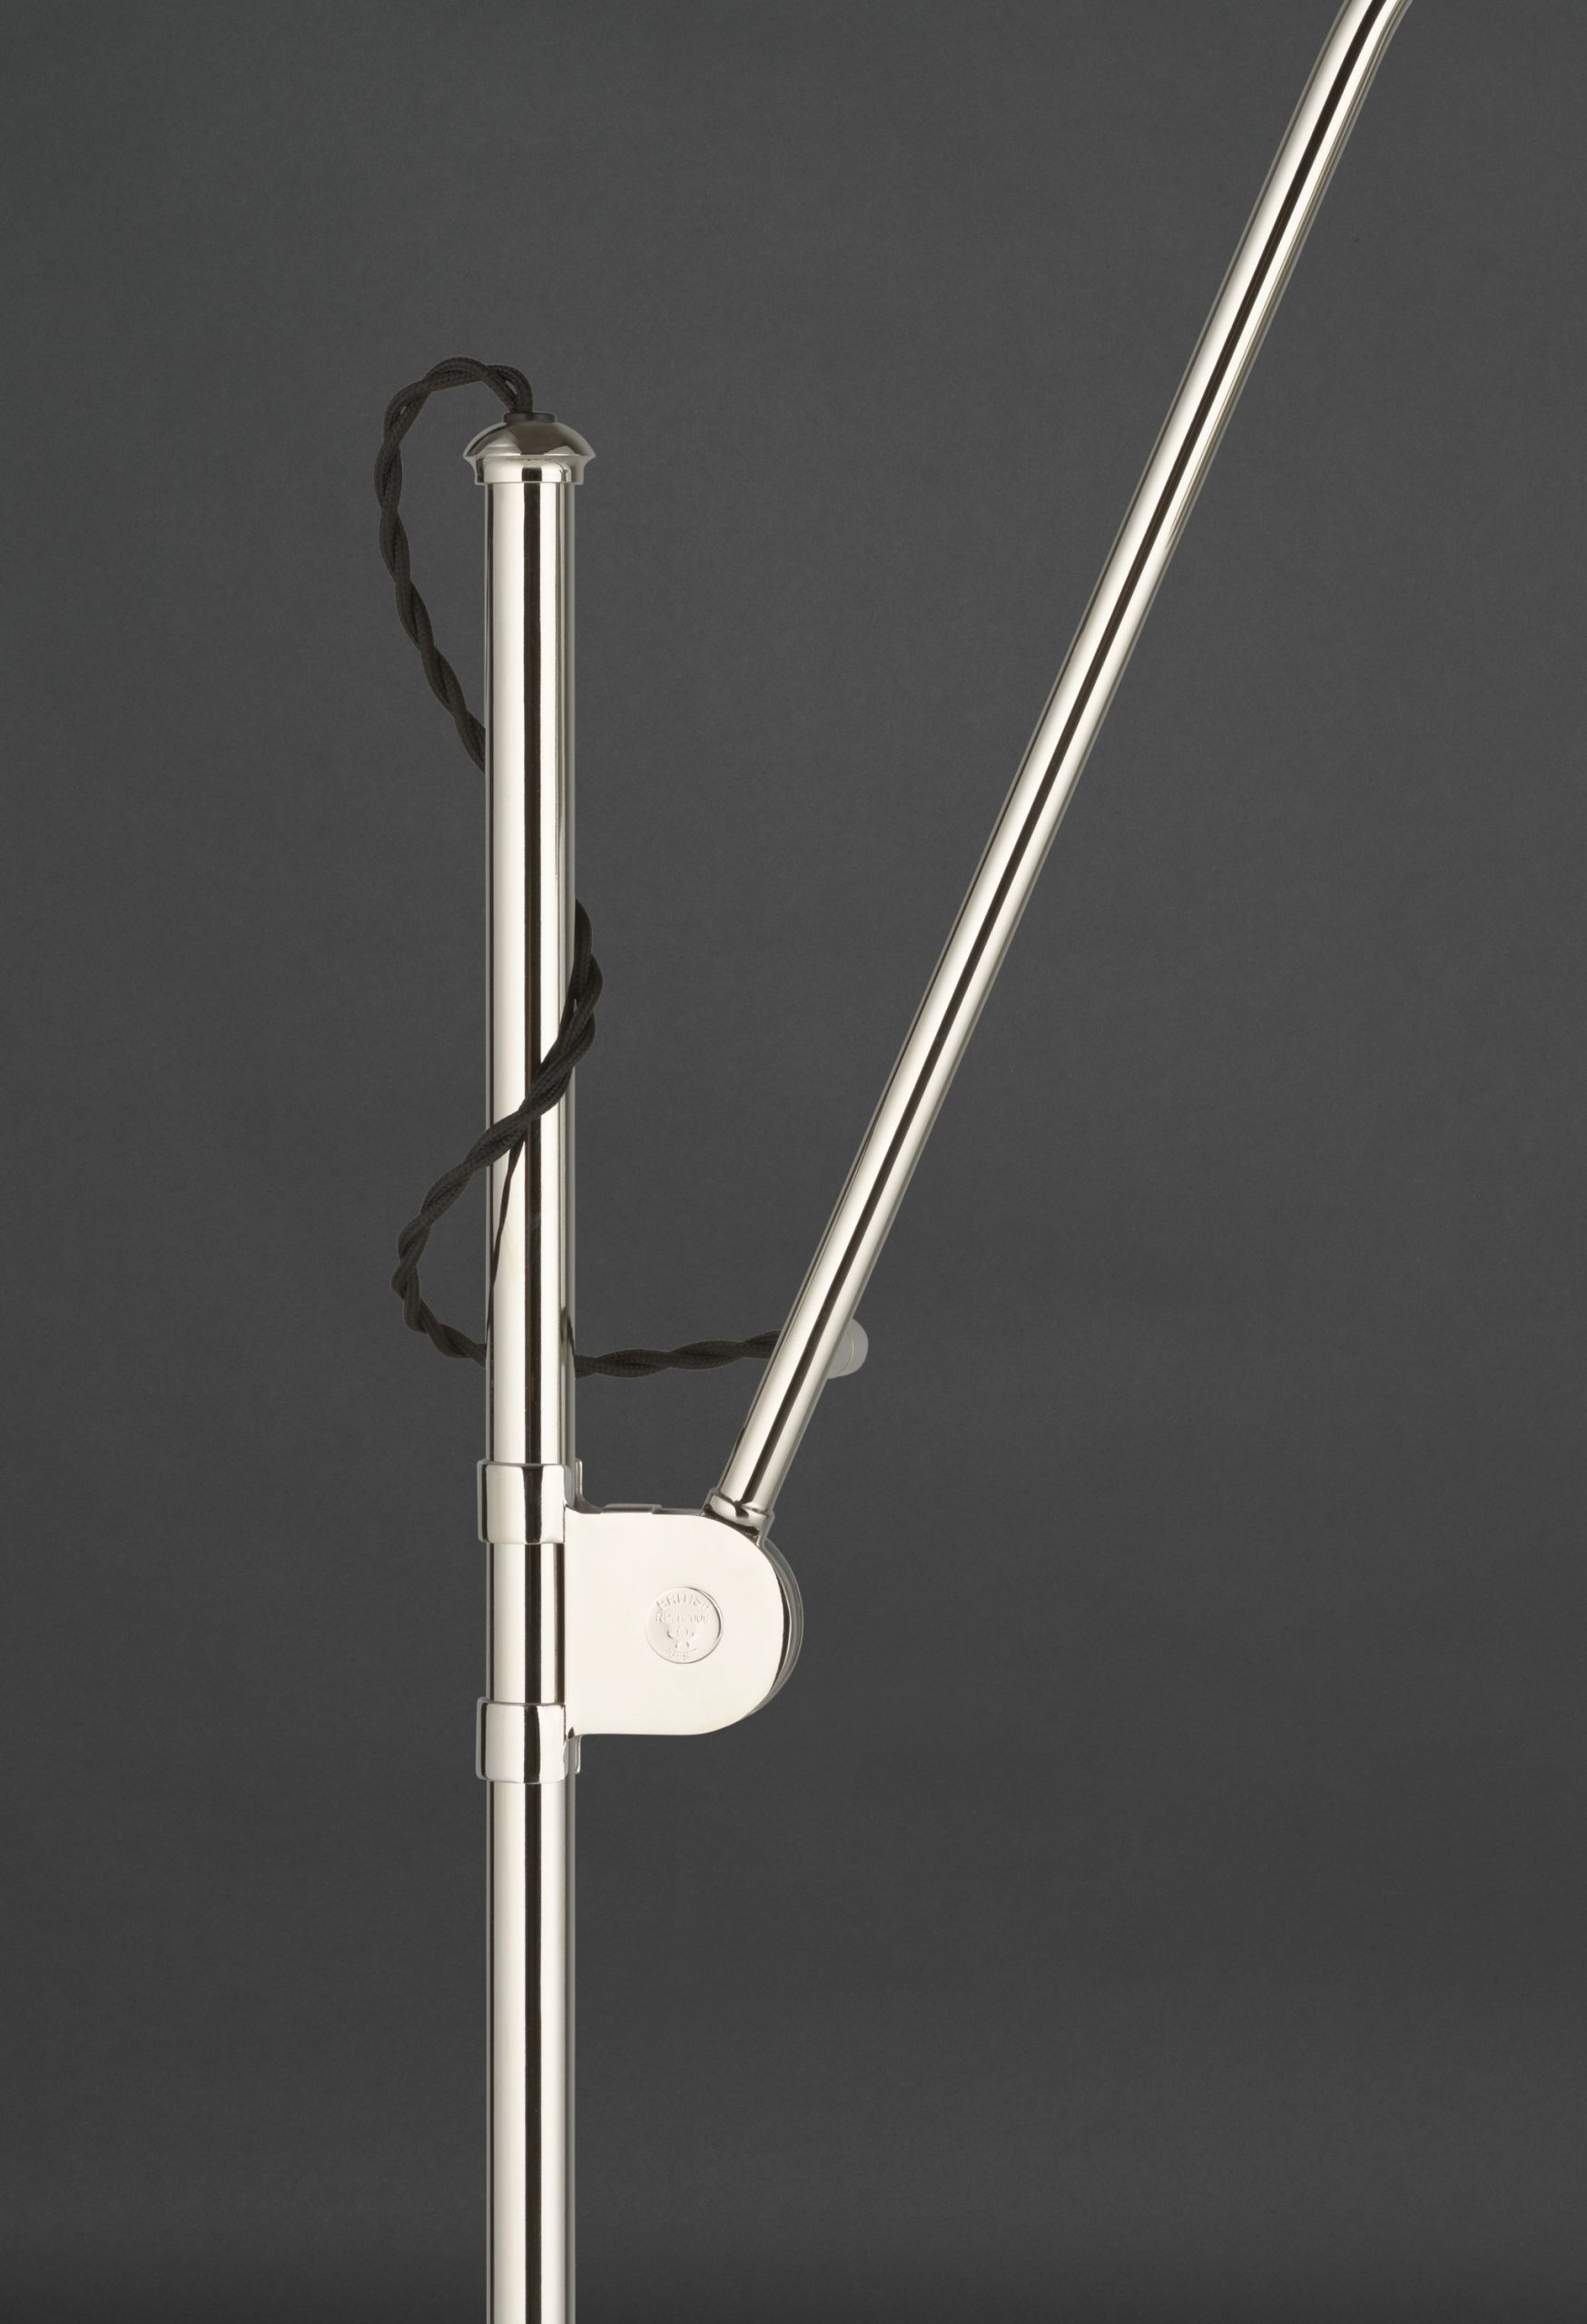 Bestlite 90th anniversary floor lamp with curled cord